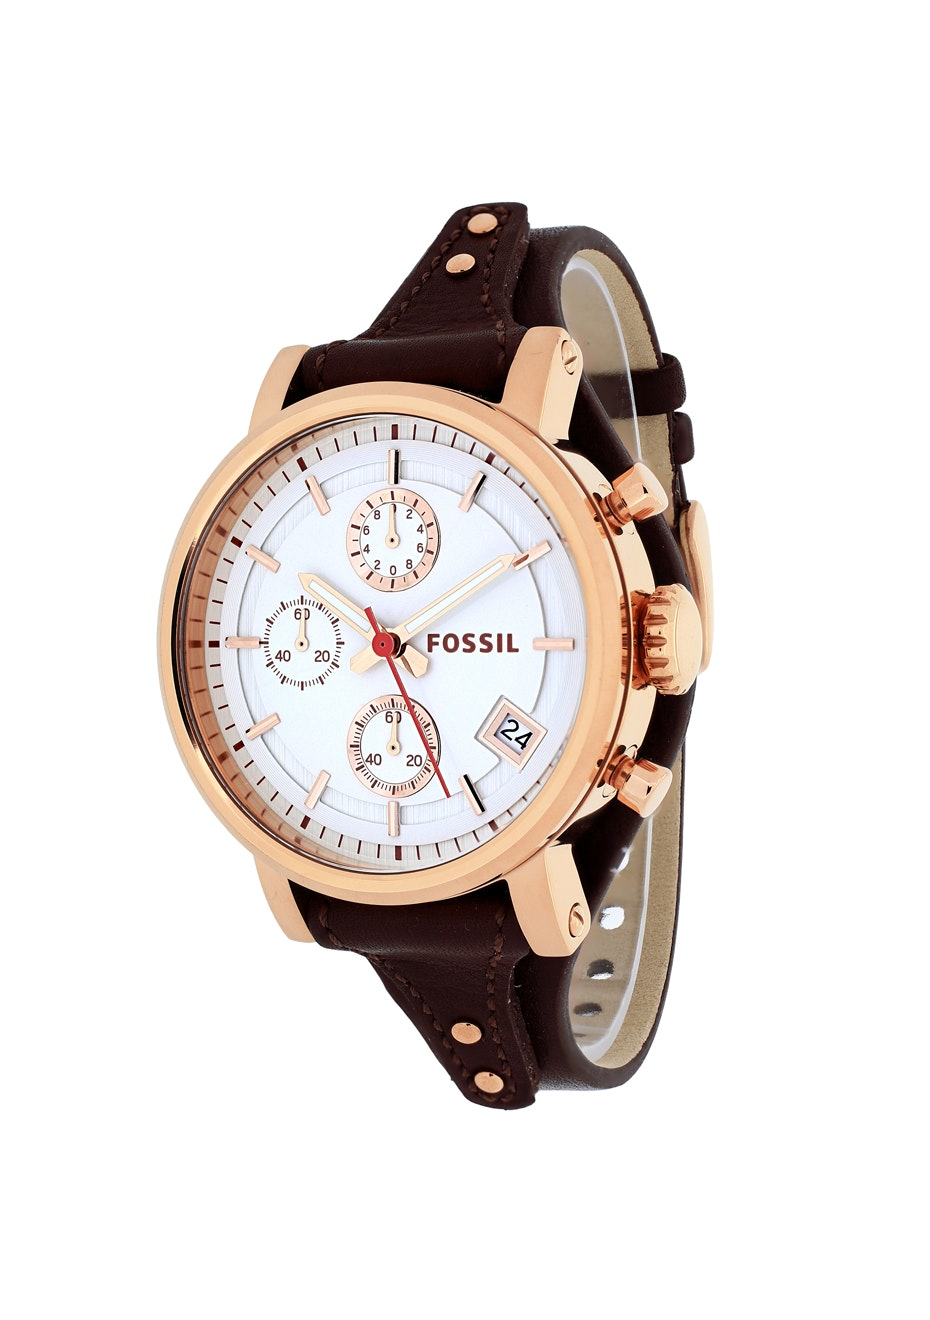 Fossil Women's Original Boyfriend - White/Brown